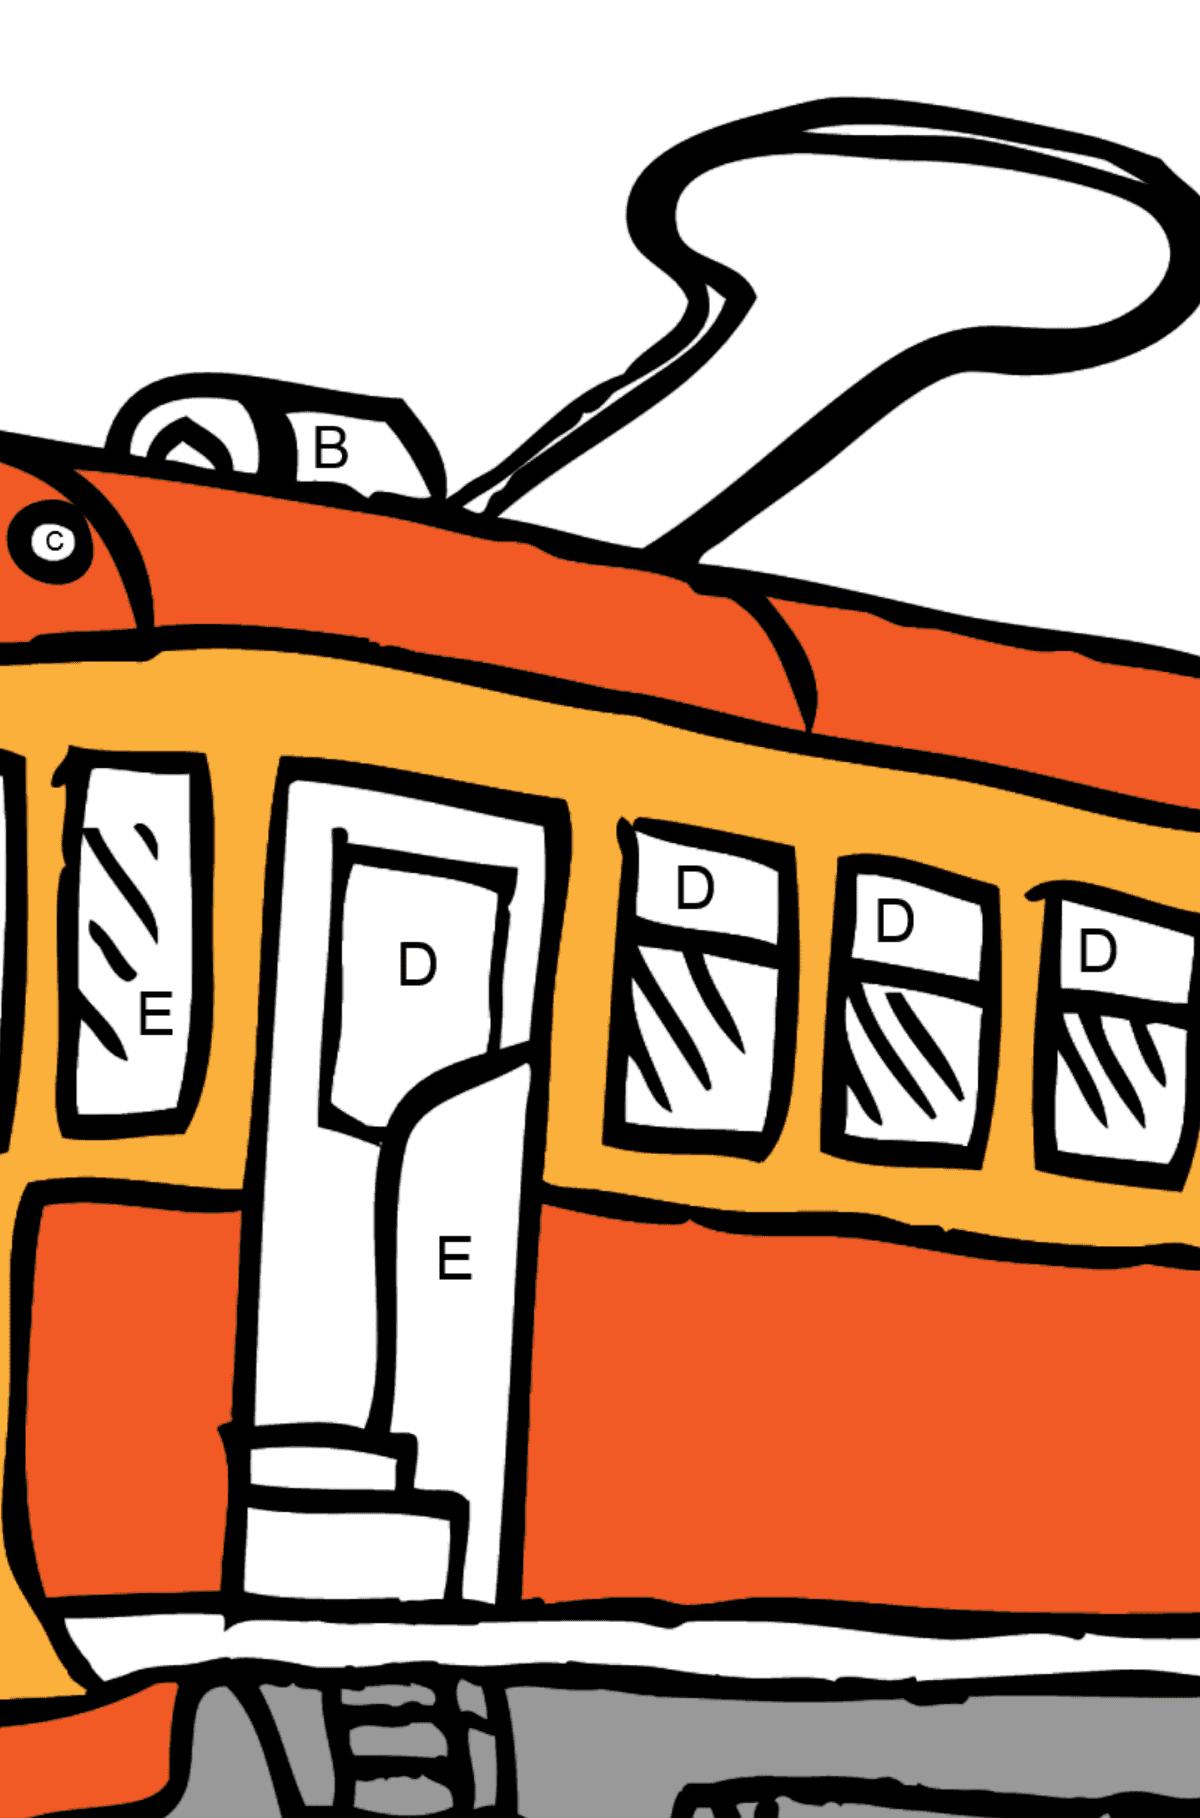 Simple Coloring Page - A Tram is Bored - Coloring by Letters for Kids